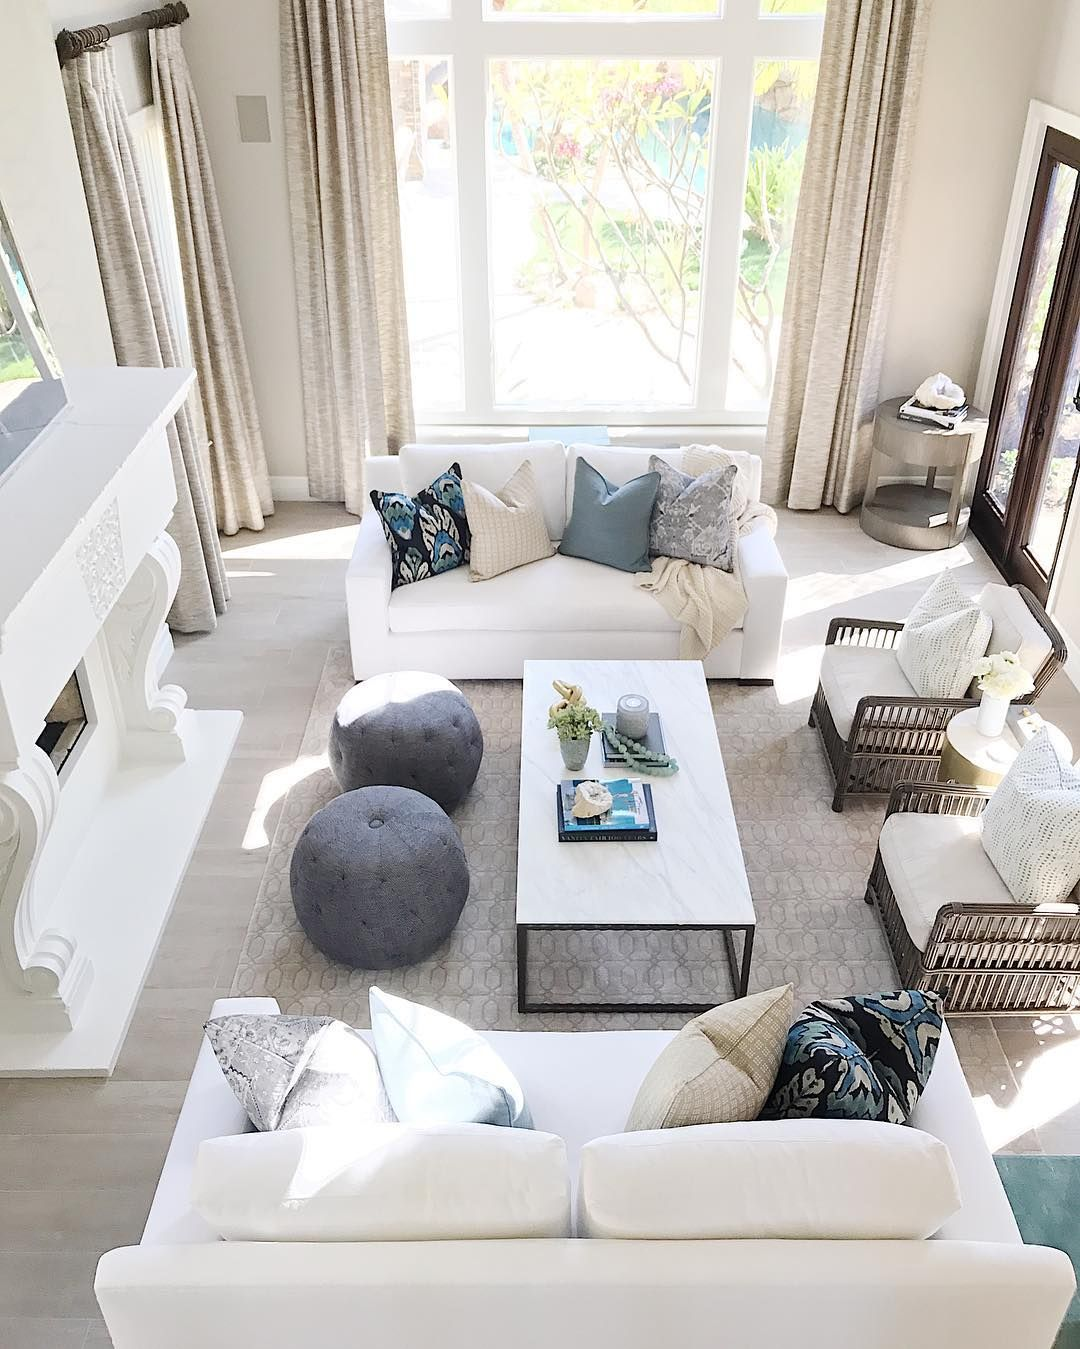 Pin by SABON HOME on BRIGHT HOME | Pinterest | Wicker furniture ...